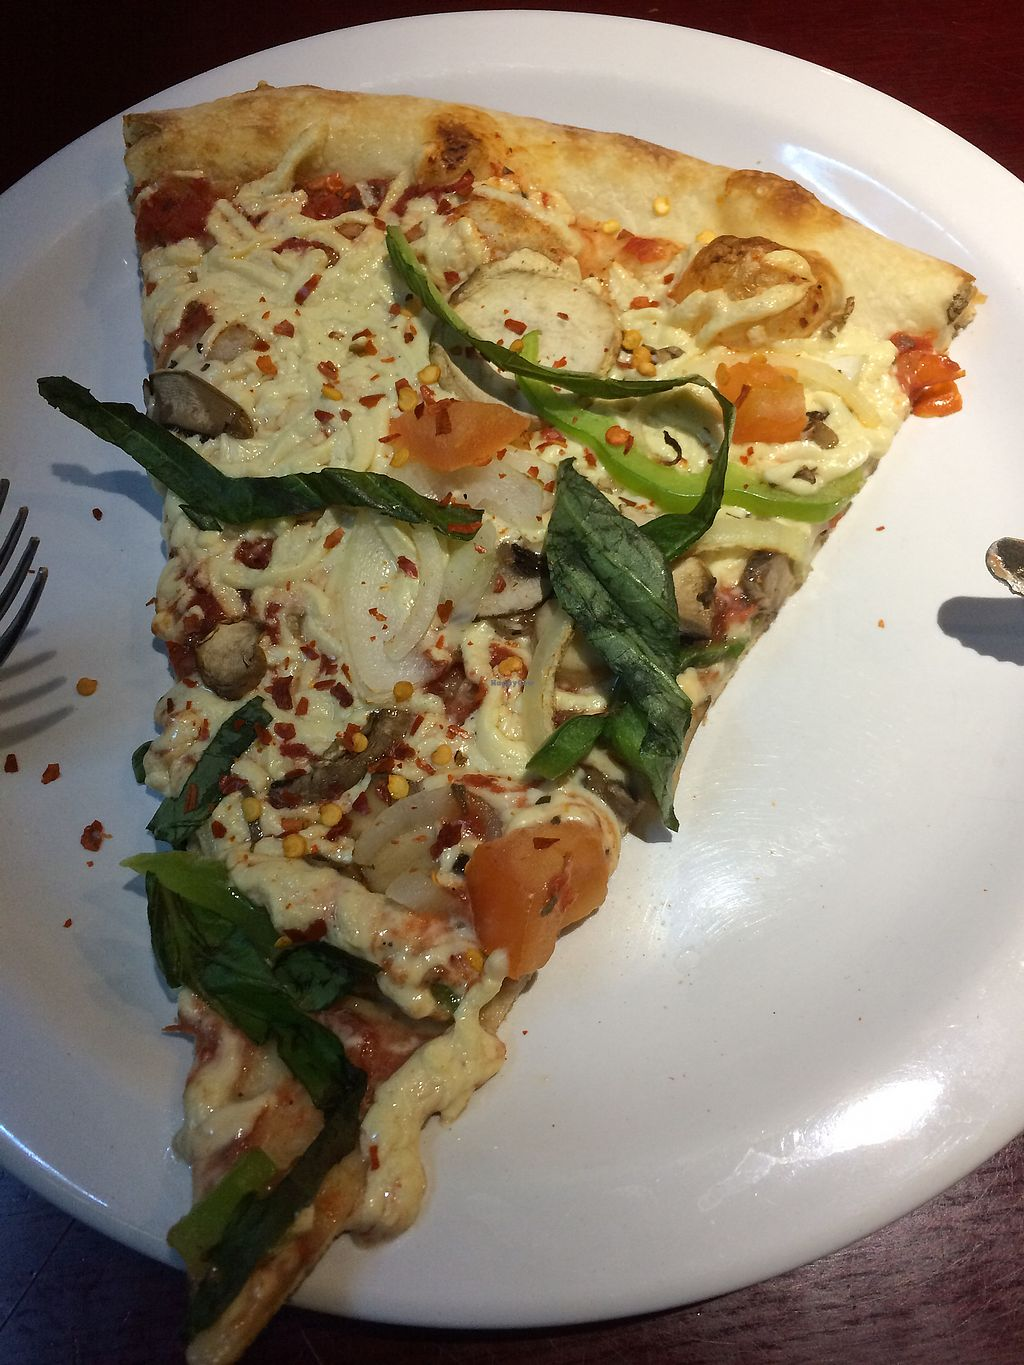 """Photo of Turnpike Pizza  by <a href=""""/members/profile/Arti"""">Arti</a> <br/>veggie combo with vegan cheese <br/> December 16, 2017  - <a href='/contact/abuse/image/21367/336149'>Report</a>"""